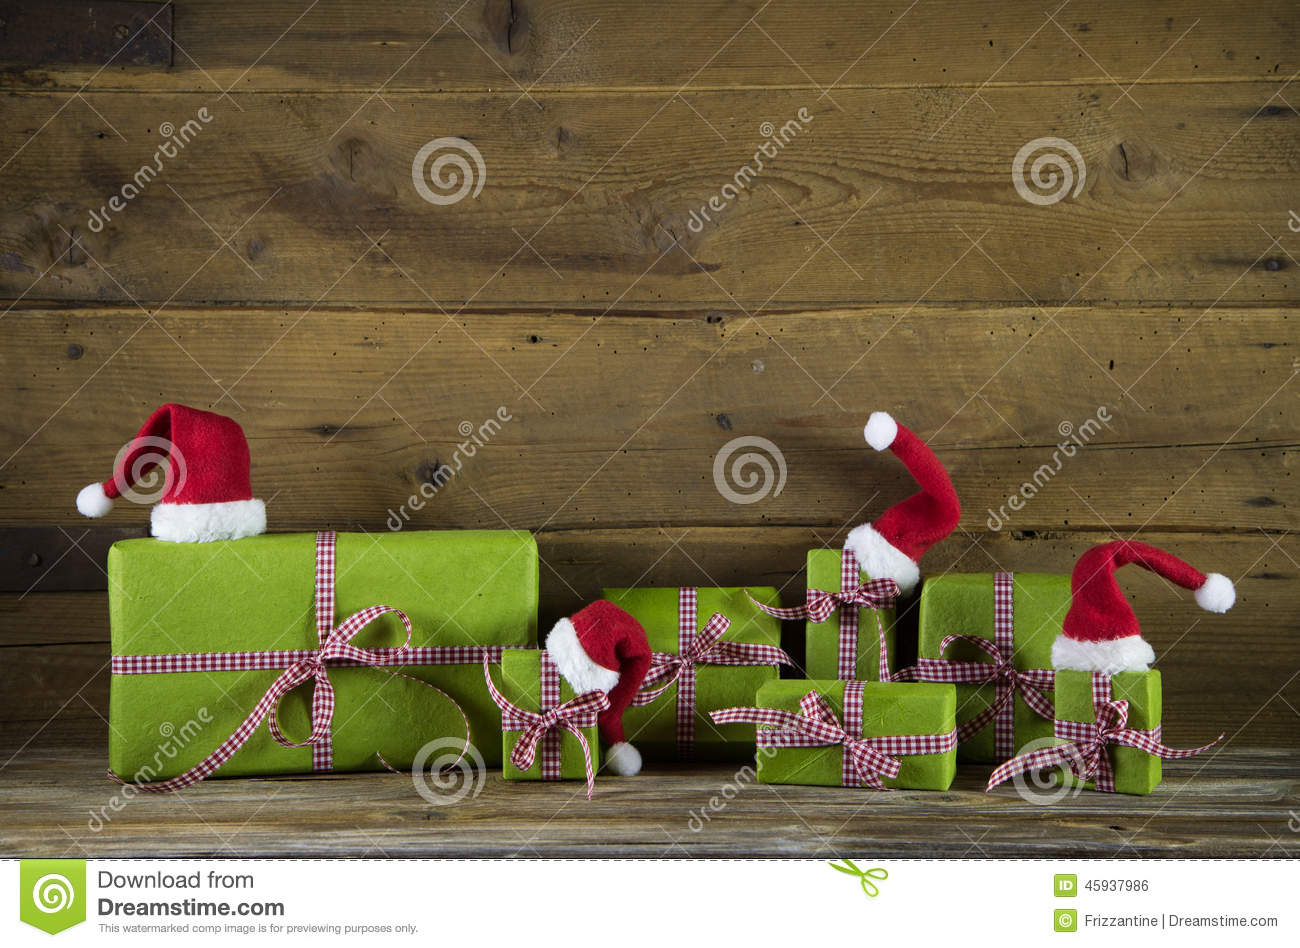 Christmas presents in apple green decorated with red santa hats